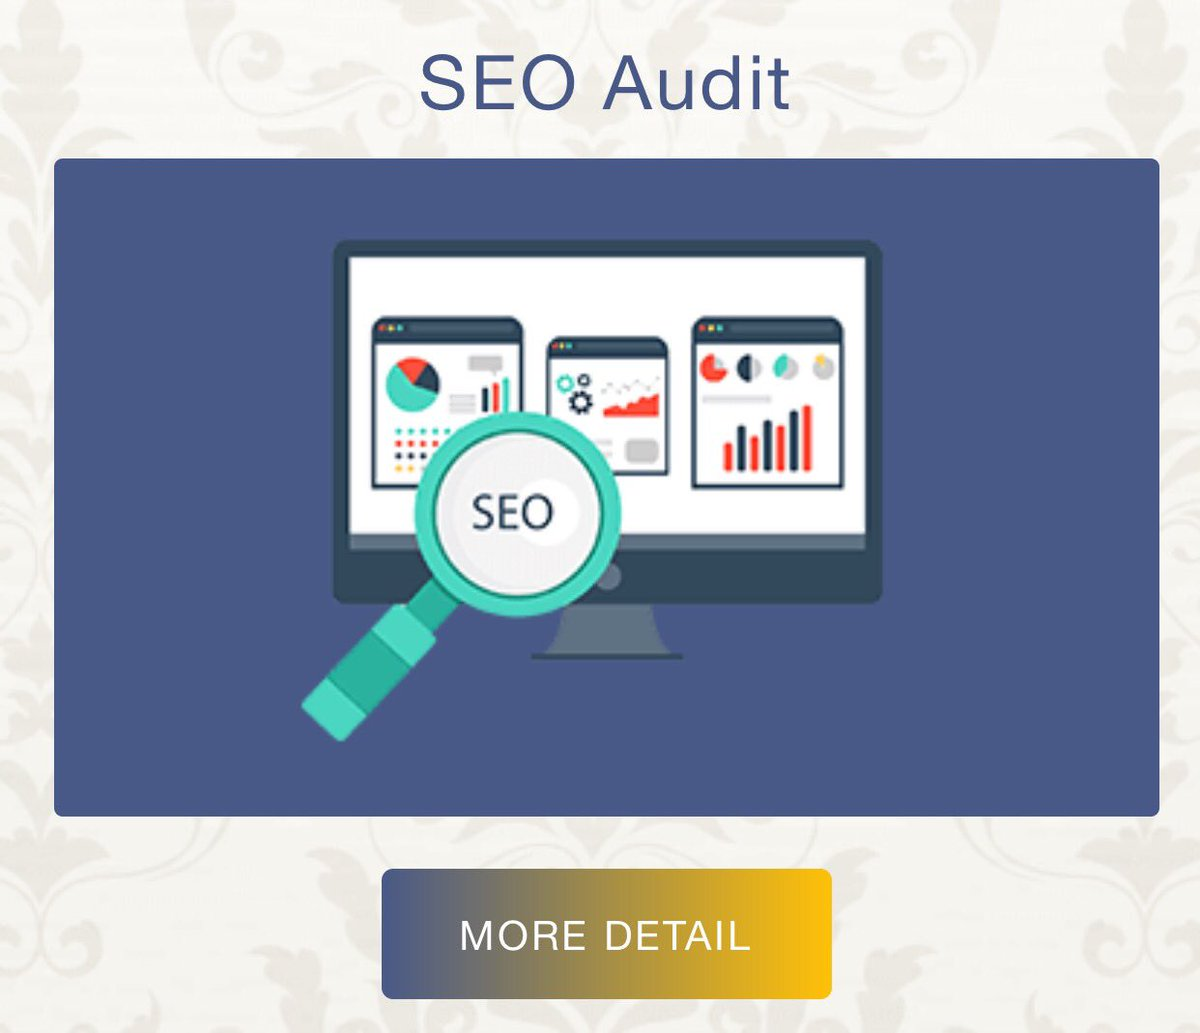 Just interesting with my #SEOAUDIT #SEO<br>http://pic.twitter.com/SdFqvD7fmz